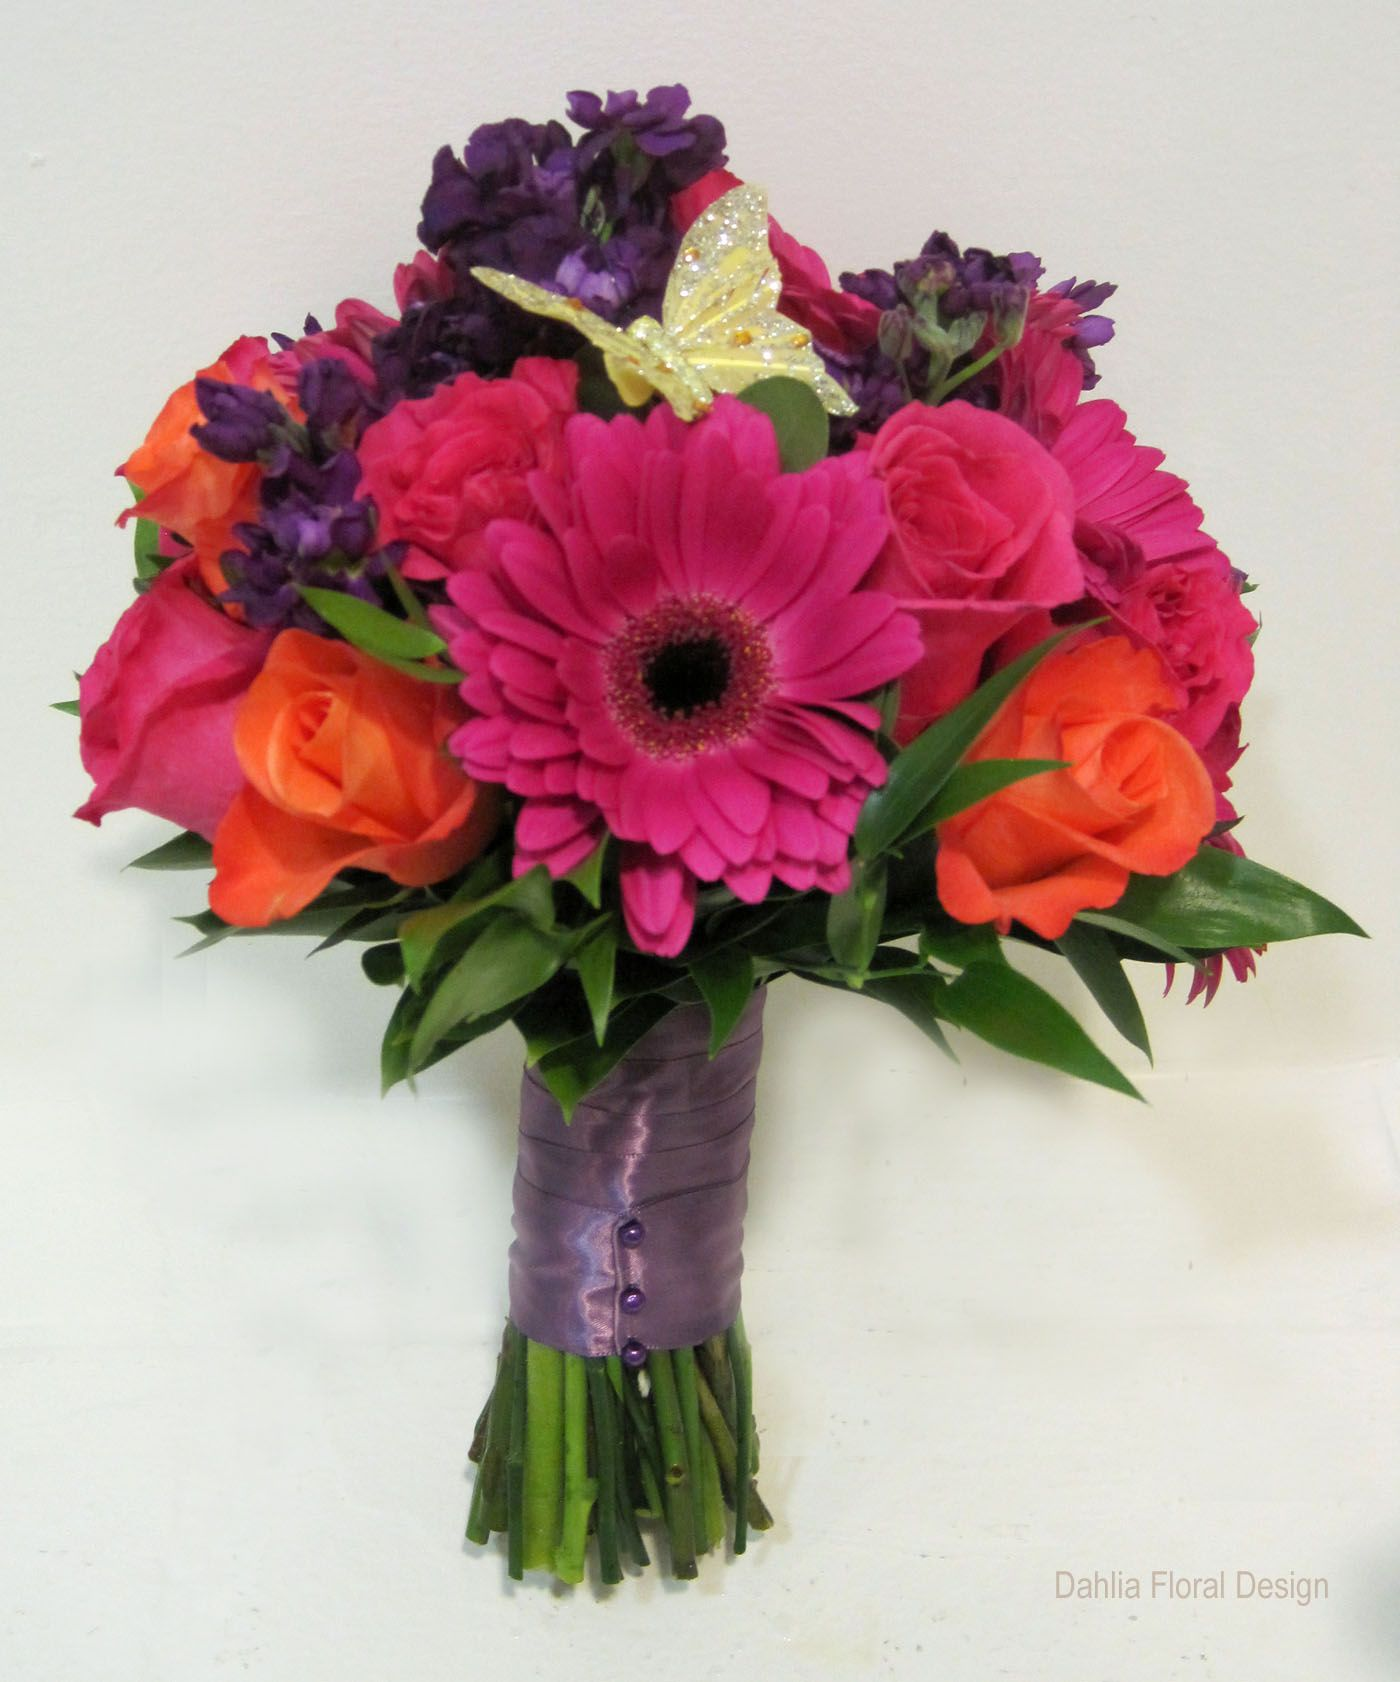 Purple And Pink Wedding Flowers: Wedding+flowers+purple+orange+pink+yellow